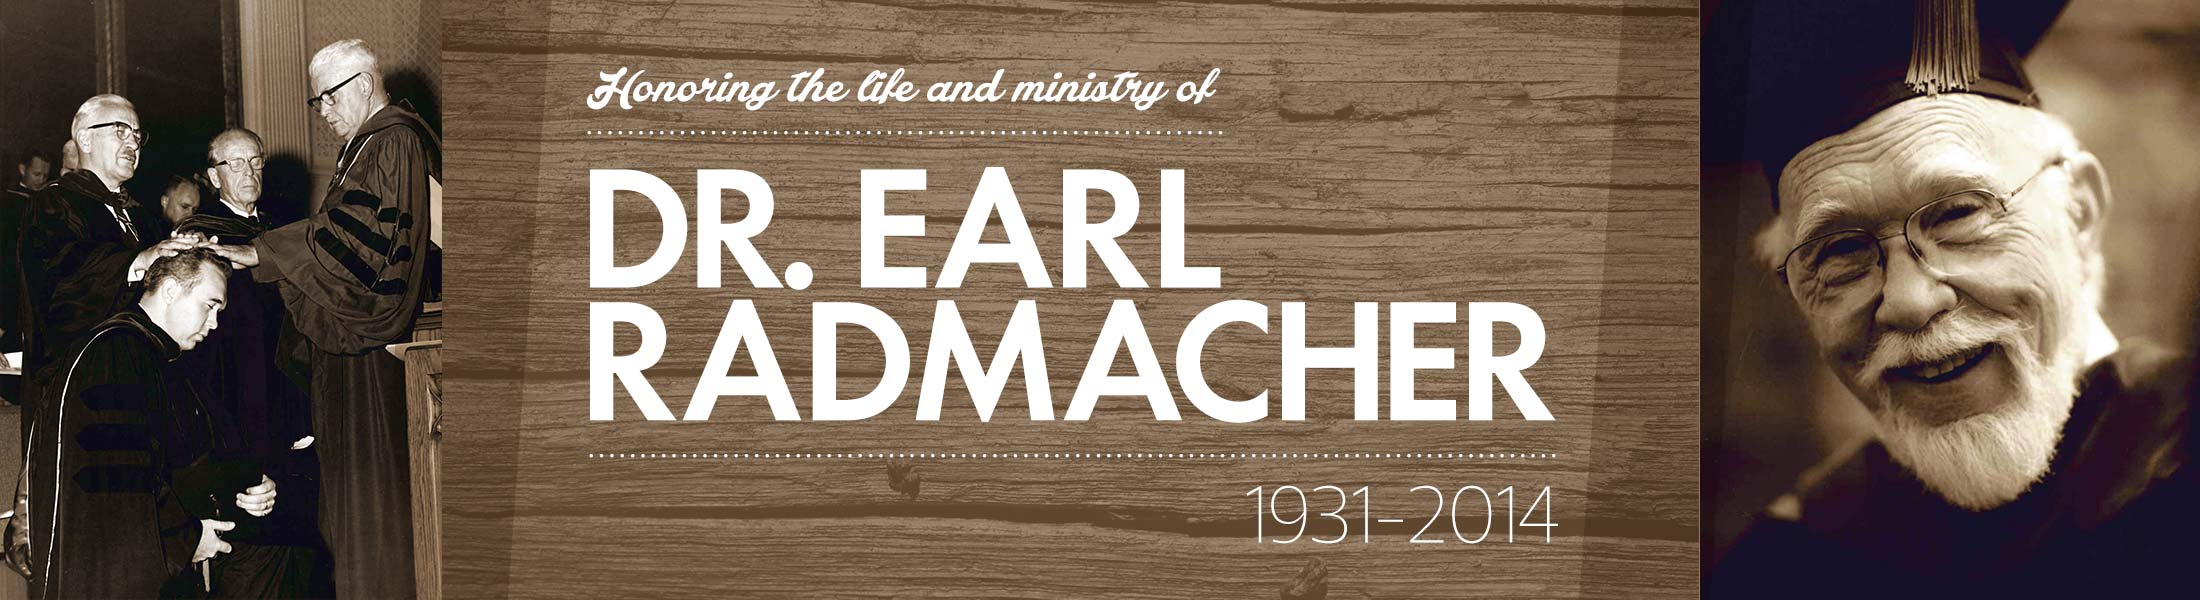 Honoring the life and ministry of Dr. Earl Radmacher